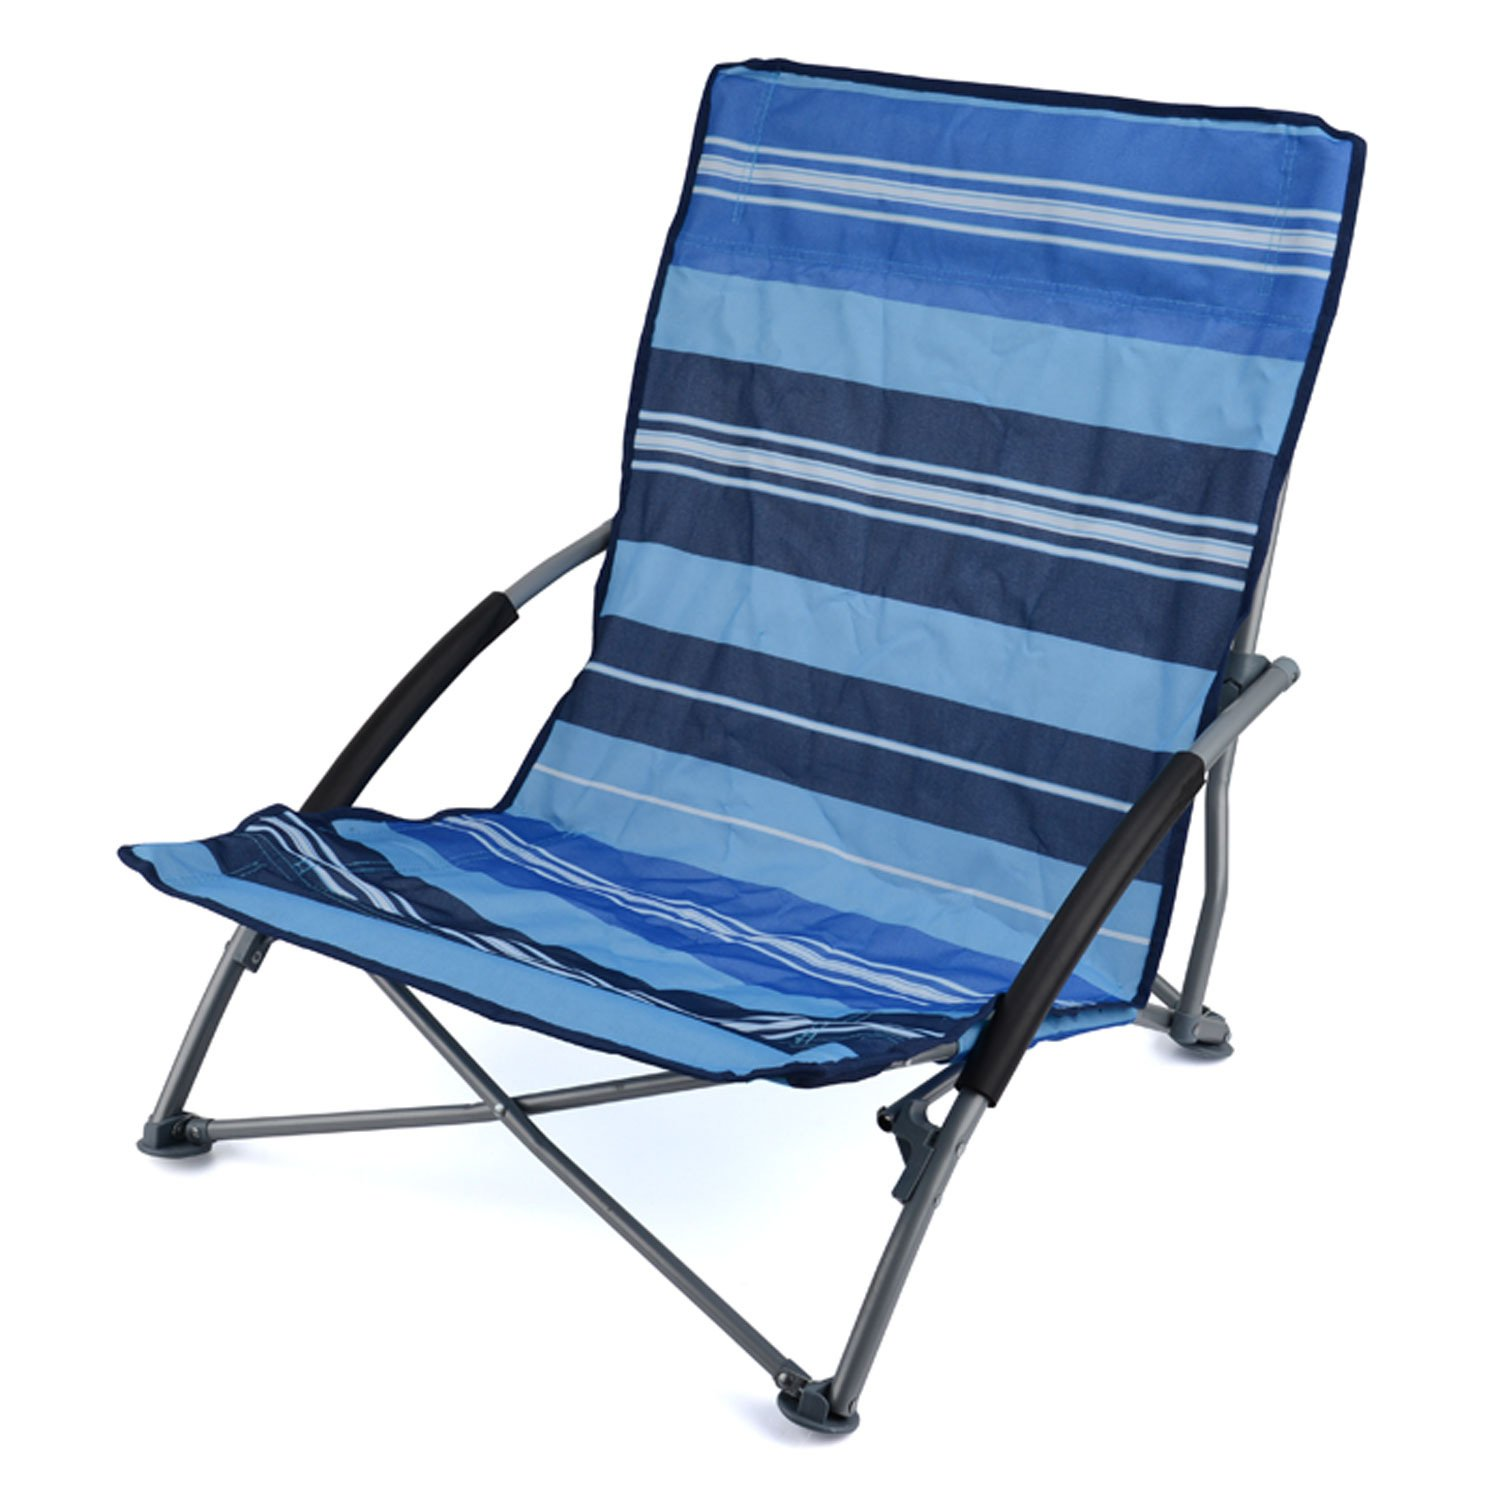 Low Folding Beach Chair Lightweight Portable Outdoor Camping